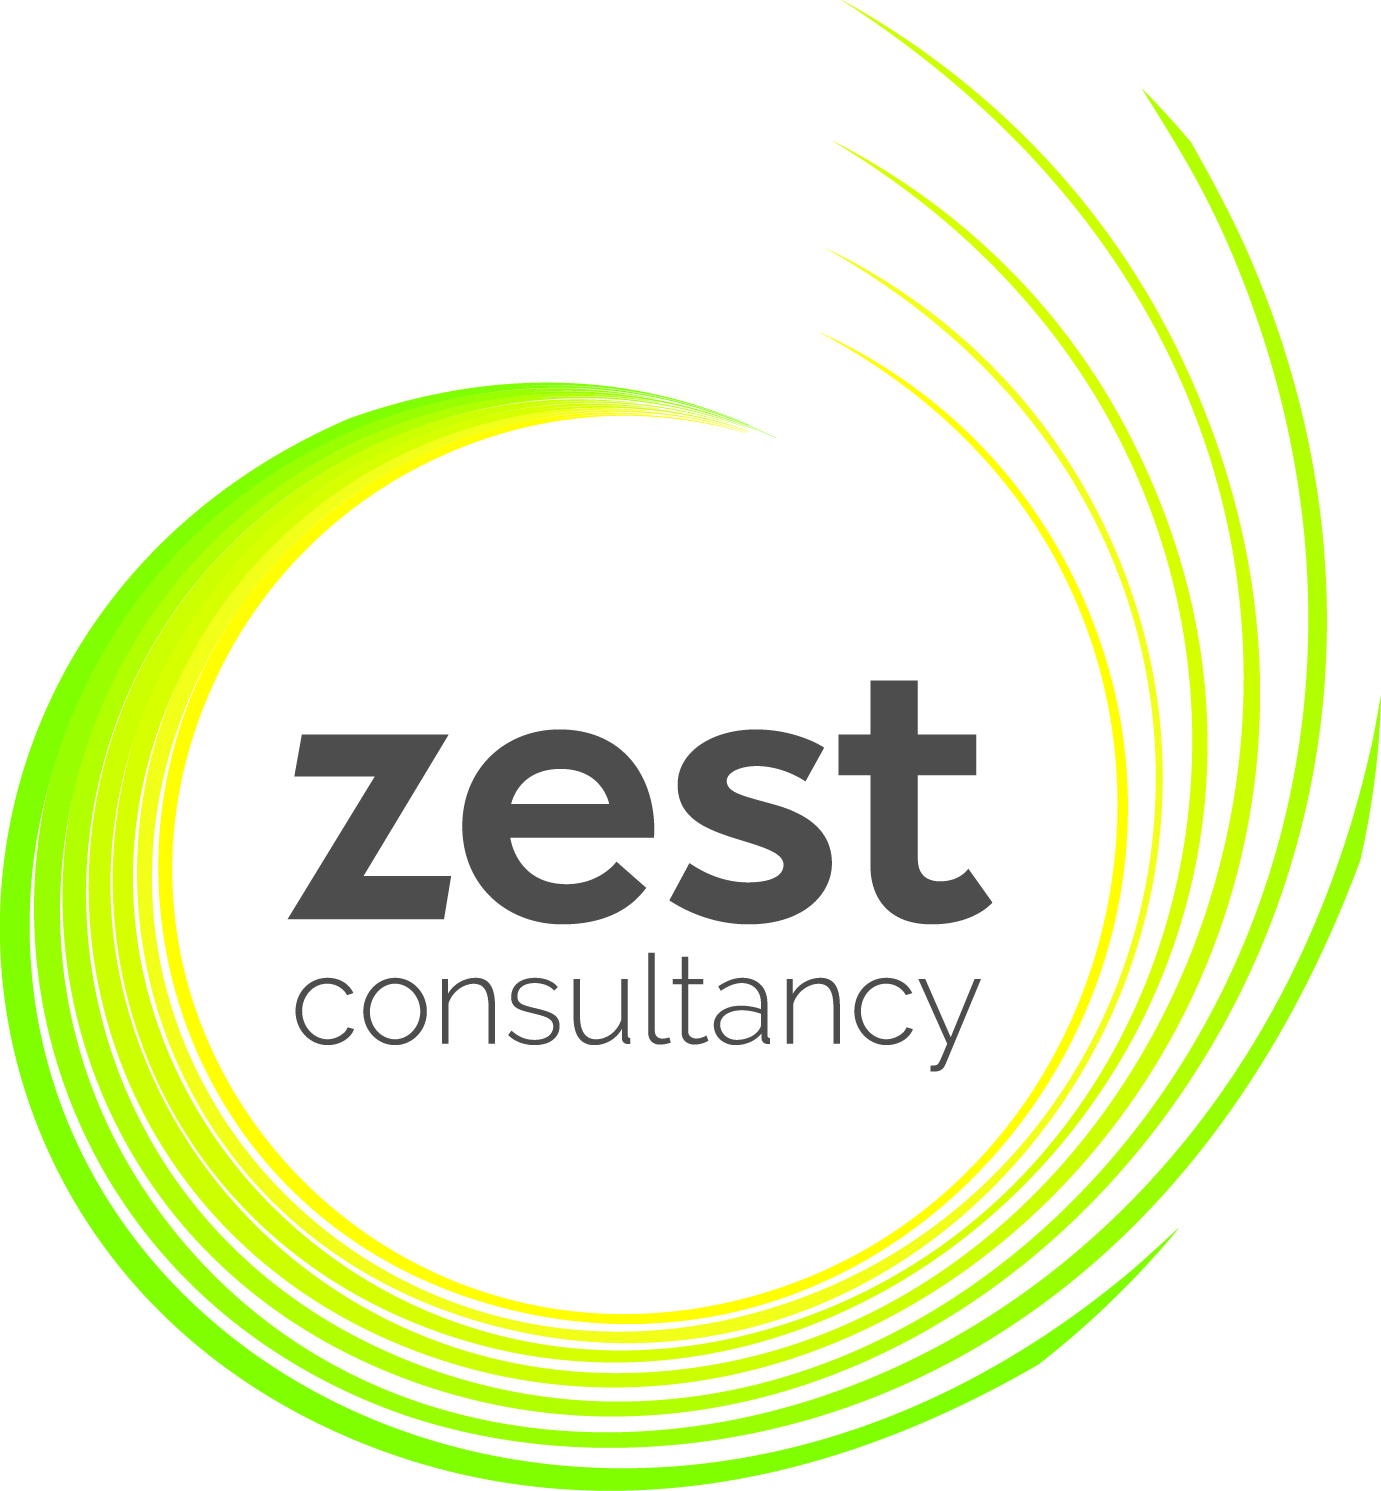 zest logo colour